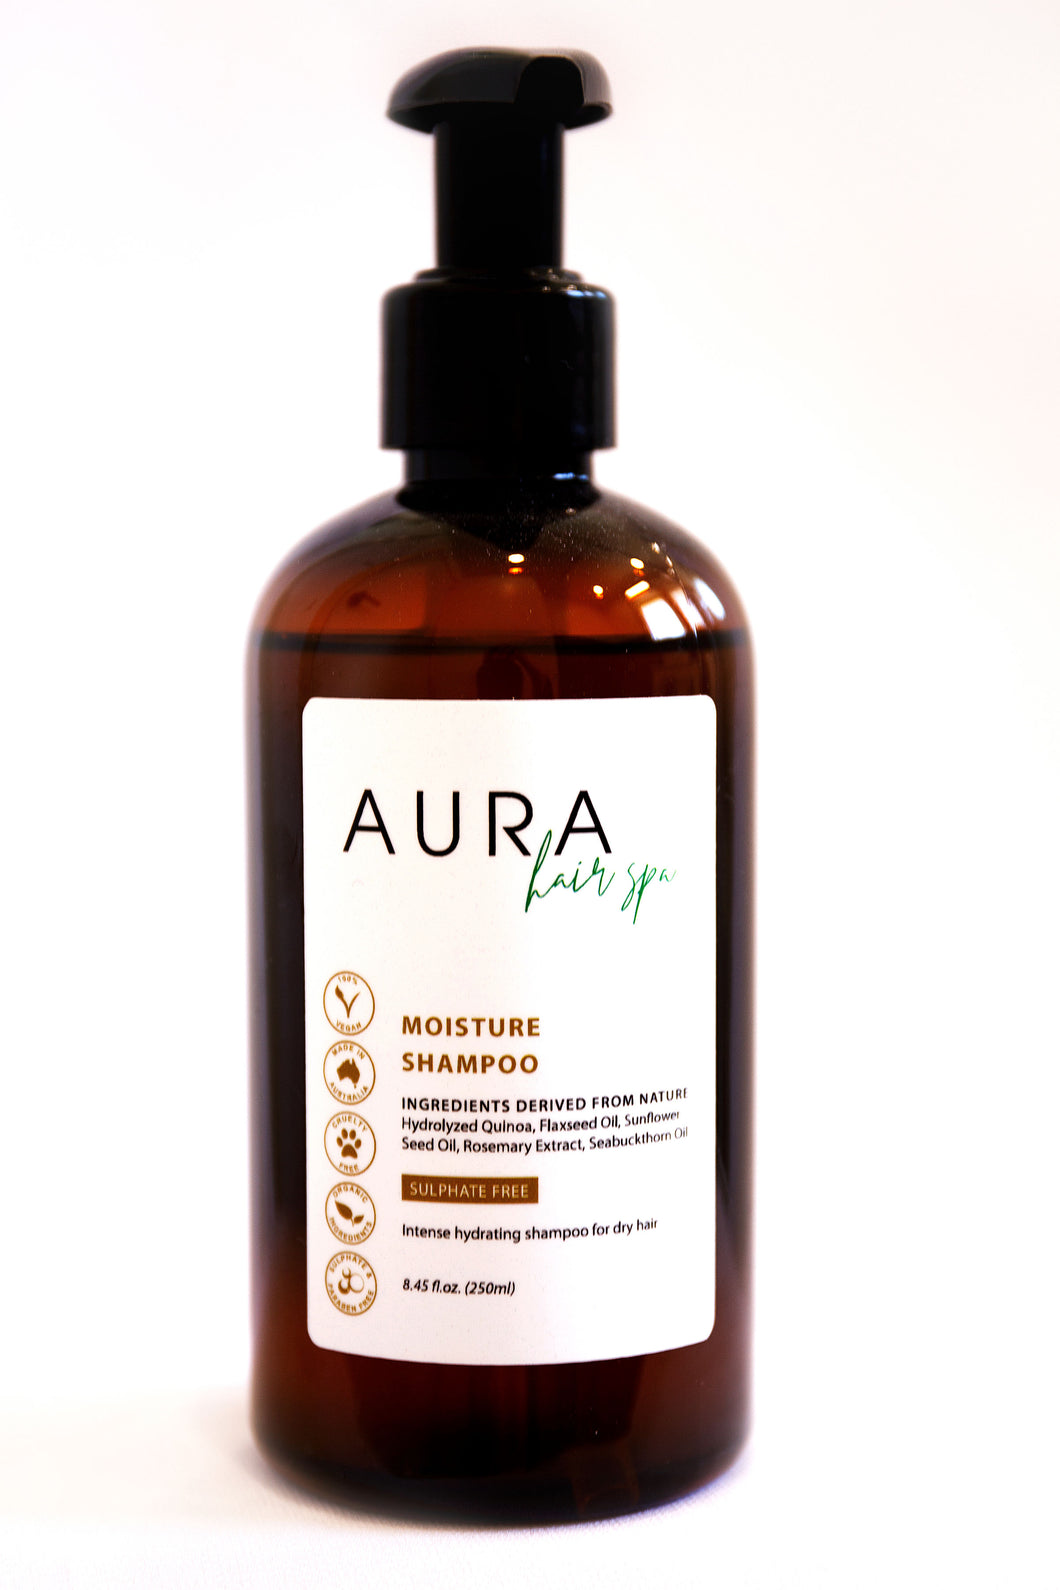 Aura Hair Spa Moisture Shampoo 250ml